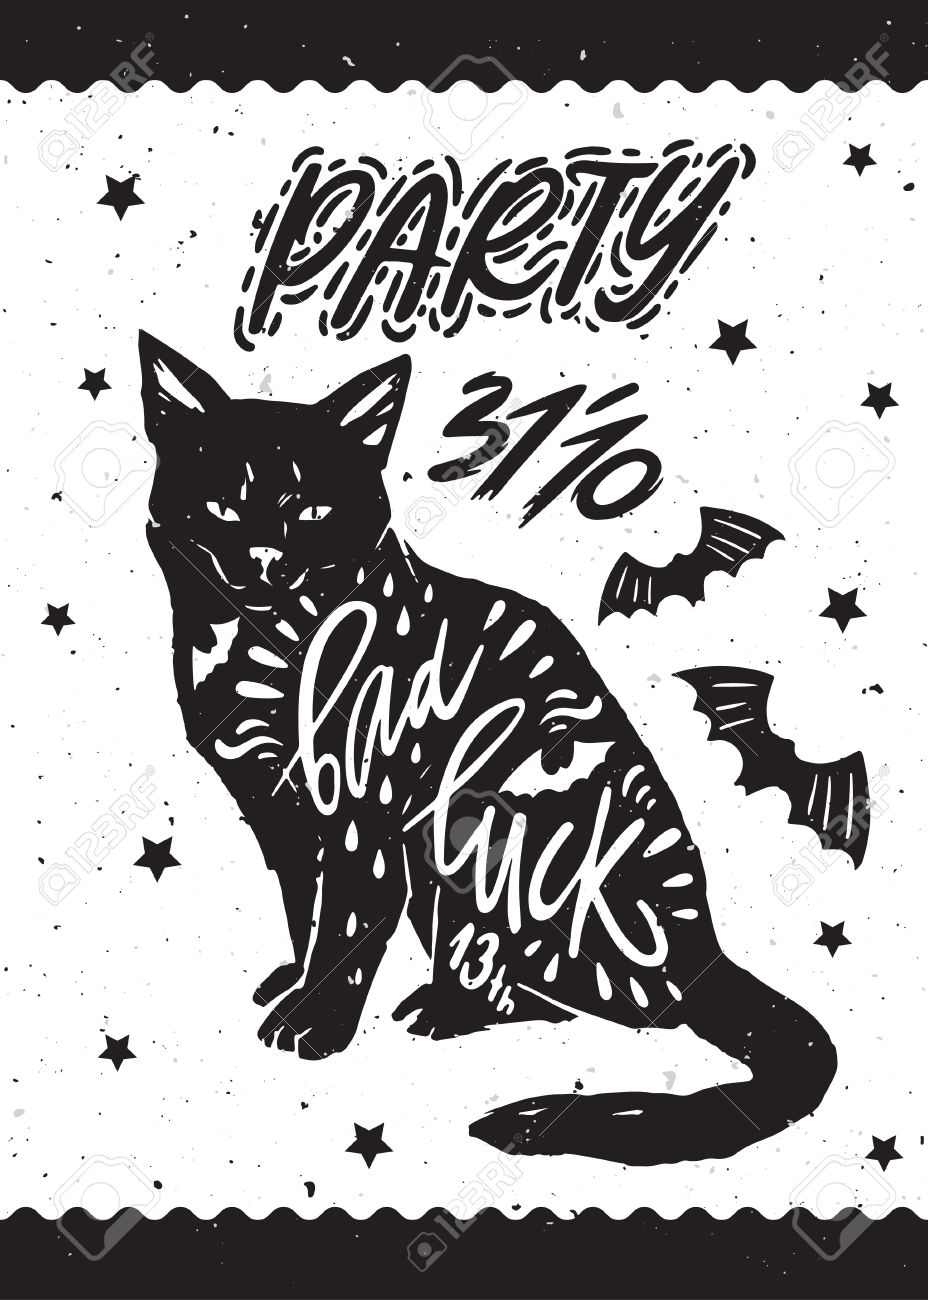 Cat Stock Quote Amazing Typography Poster For Helloween Party With Black Cat Bat